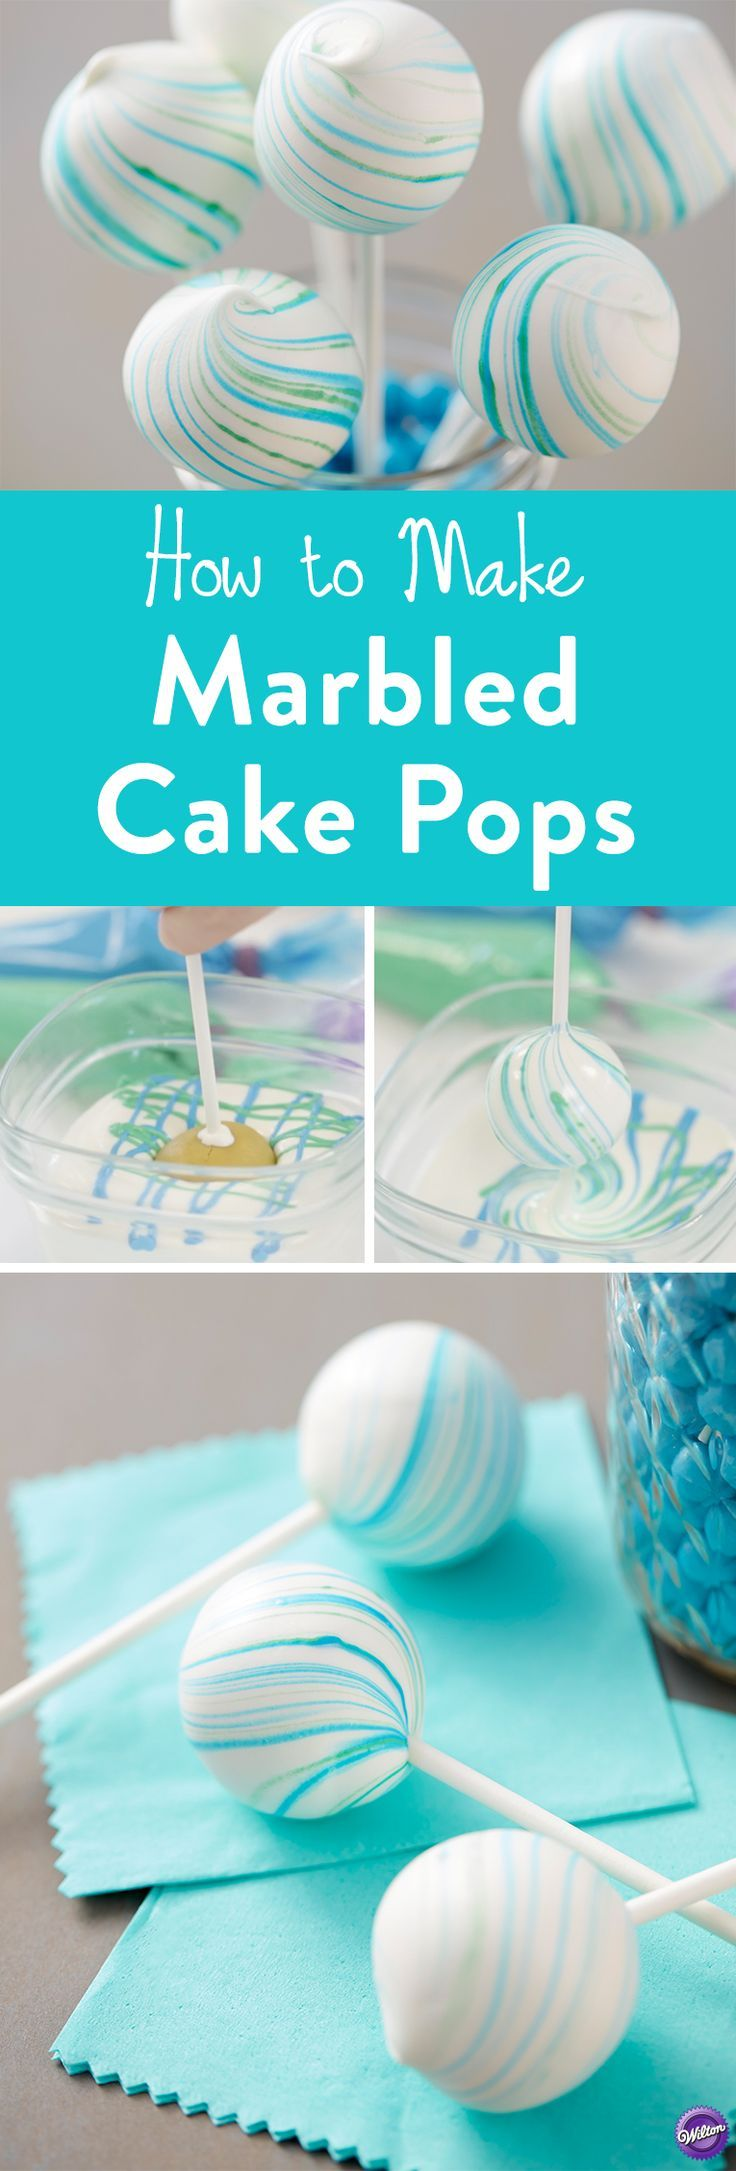 How to Make Marbled Cake Pops - Create a marbled look on your cake pops with…